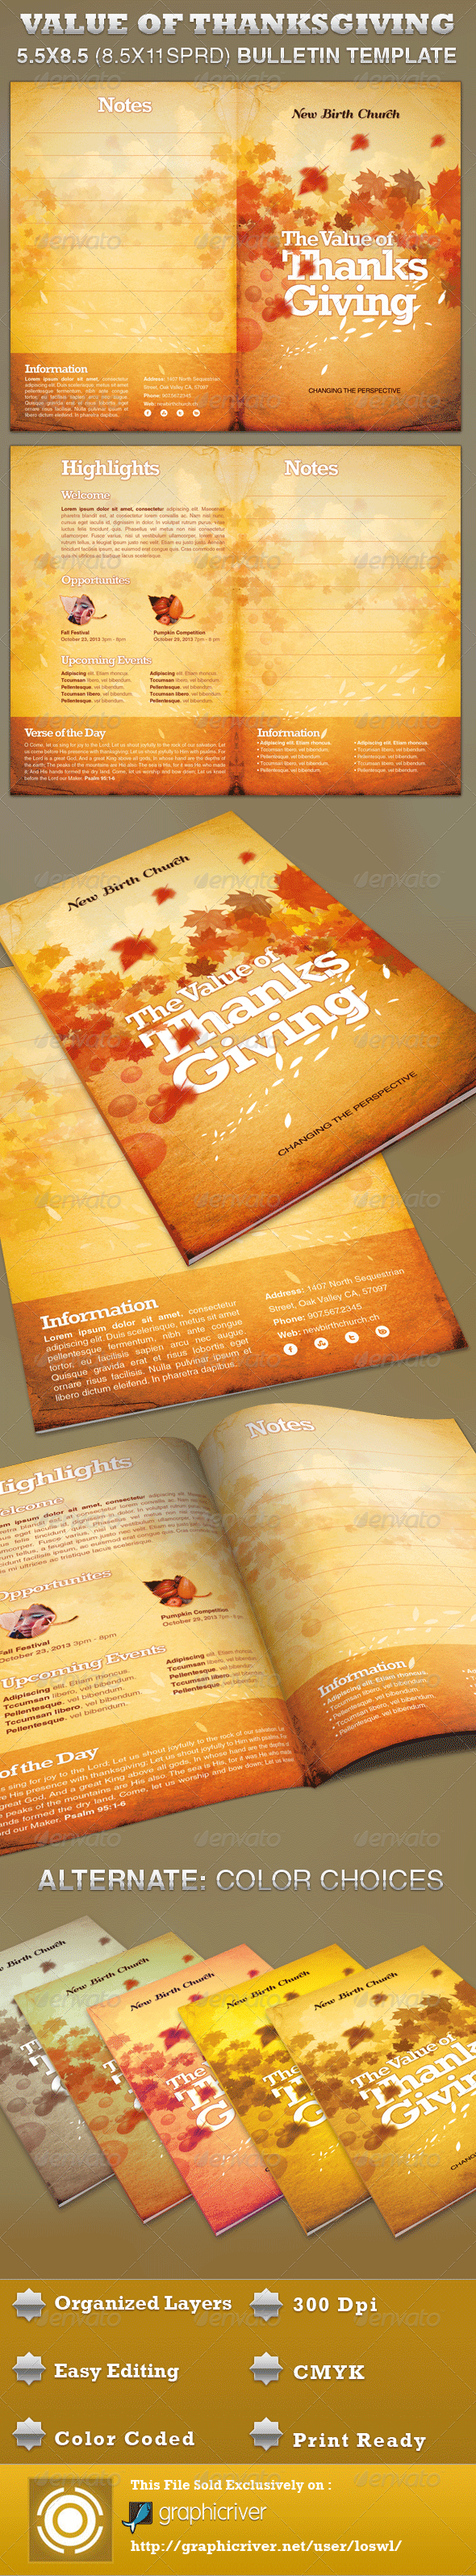 The Value of Thanksgiving Church Bulletin Template - Informational Brochures